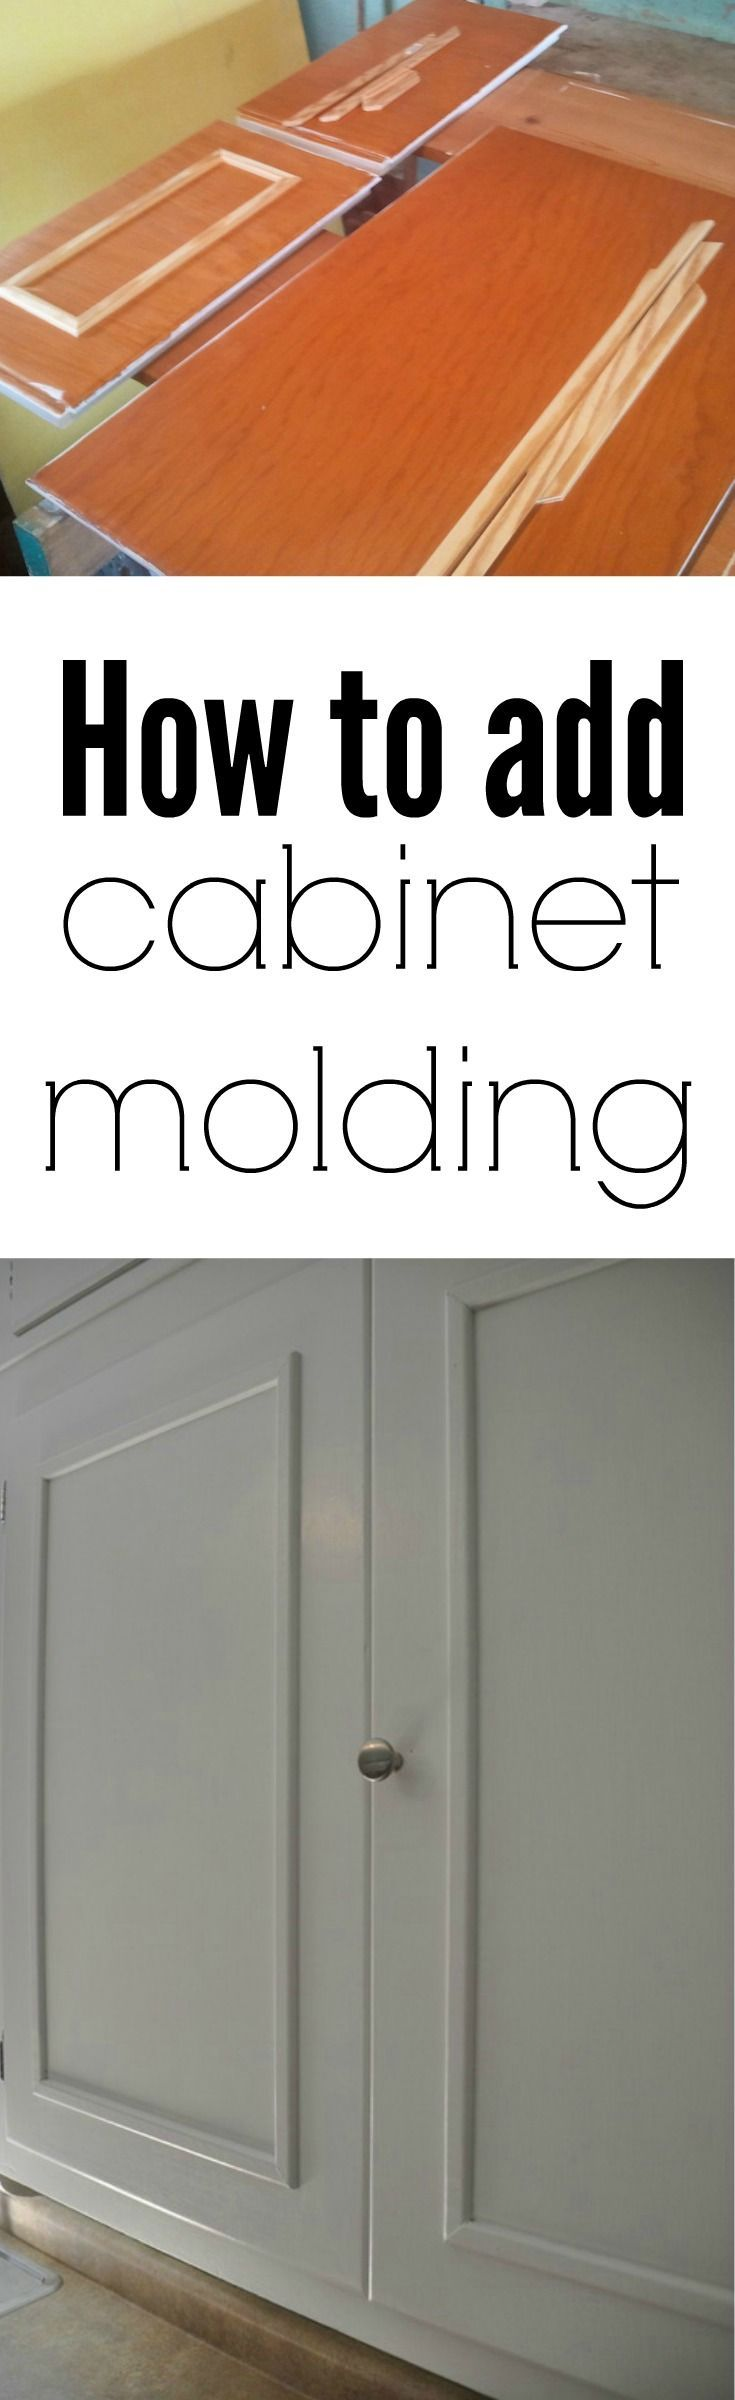 old cabinets old kitchen cabinets How to Add Cabinet Molding